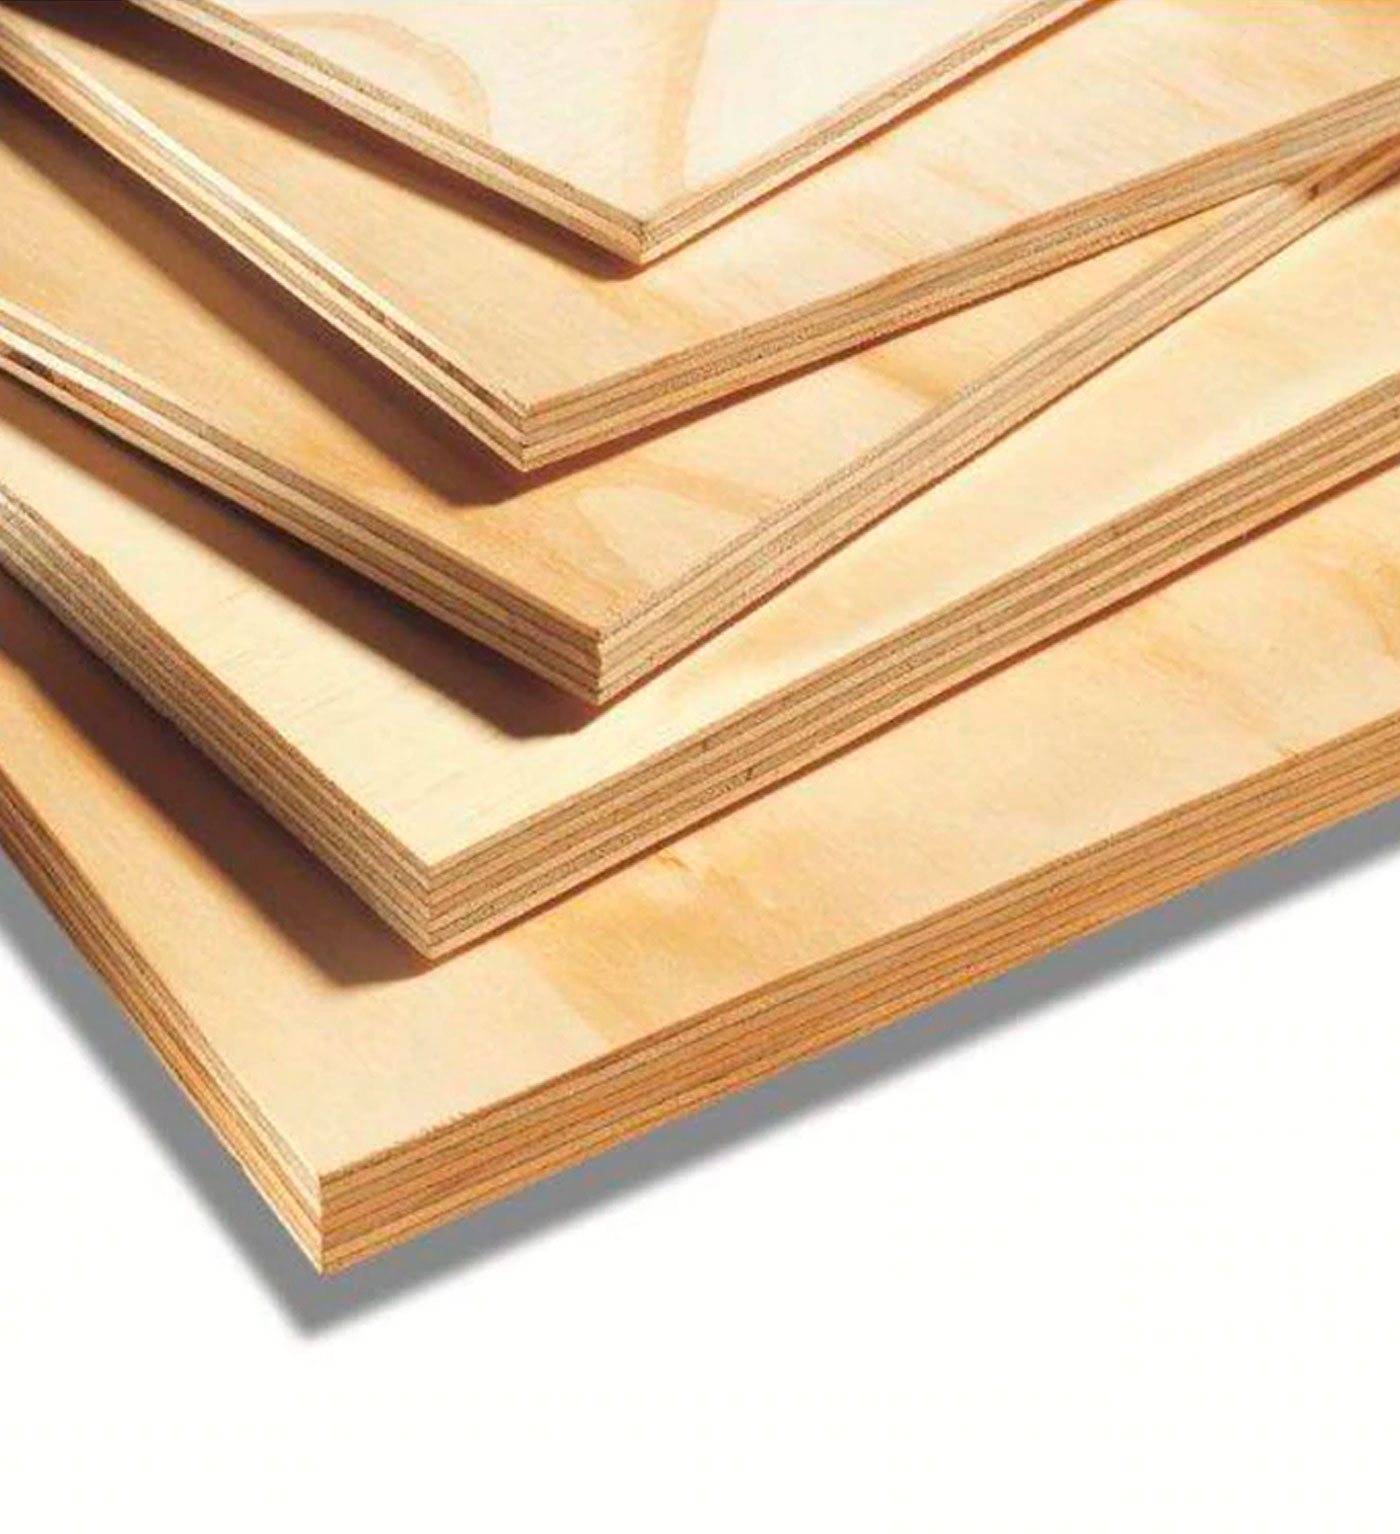 acx-plywood-lumber-supply-store-eureka-ca-humboldt-county-california